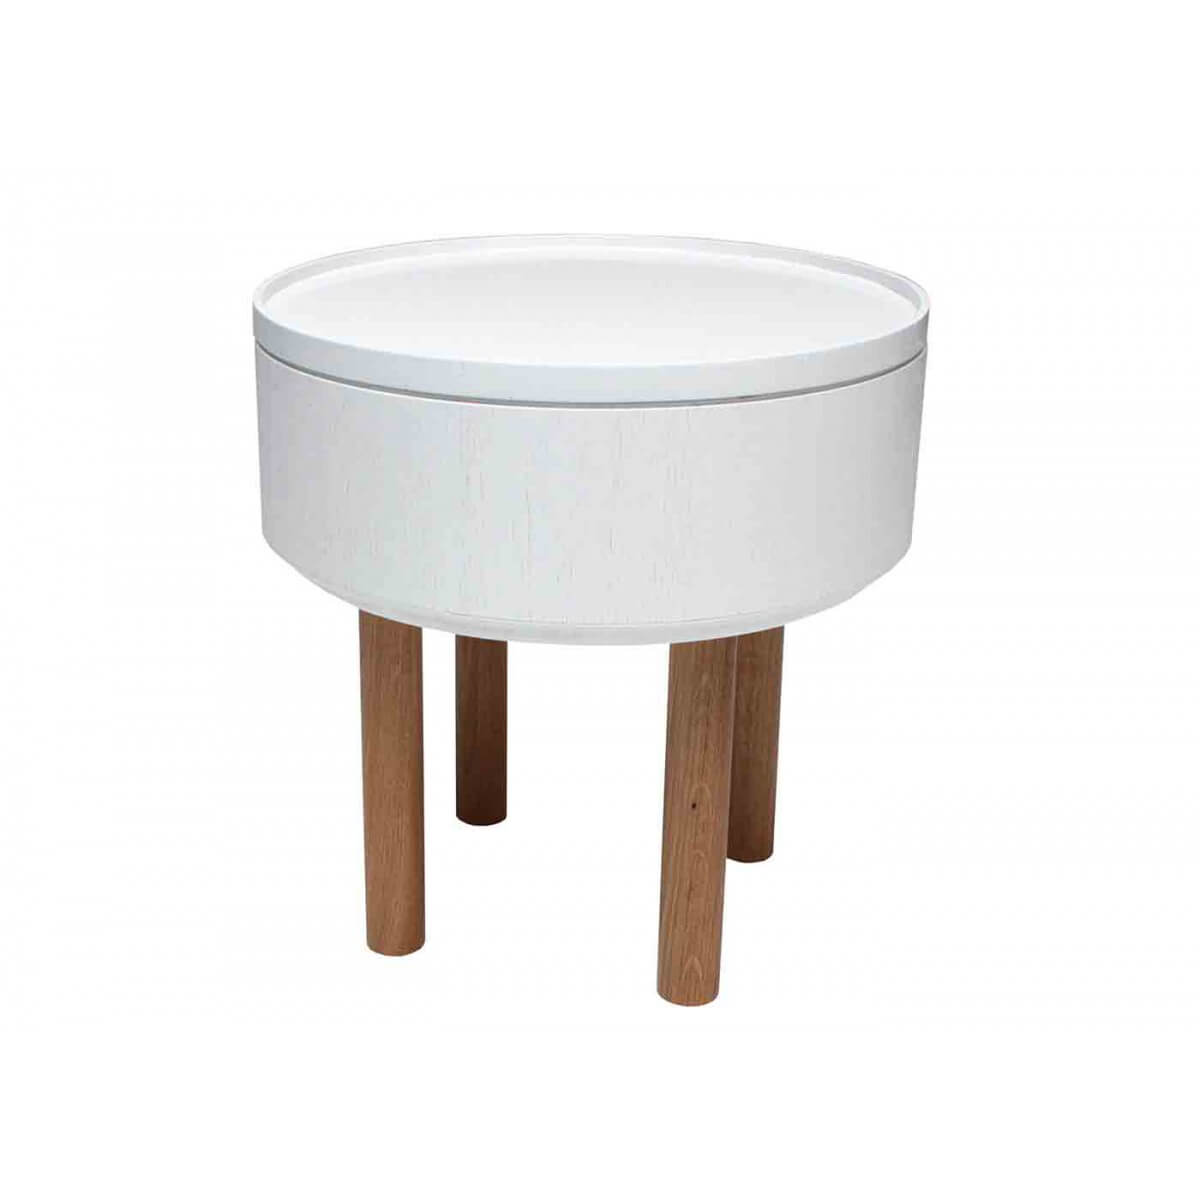 Table d 39 appoint design en bois blanc hat 2 sign e bellila for Table basse d appoint